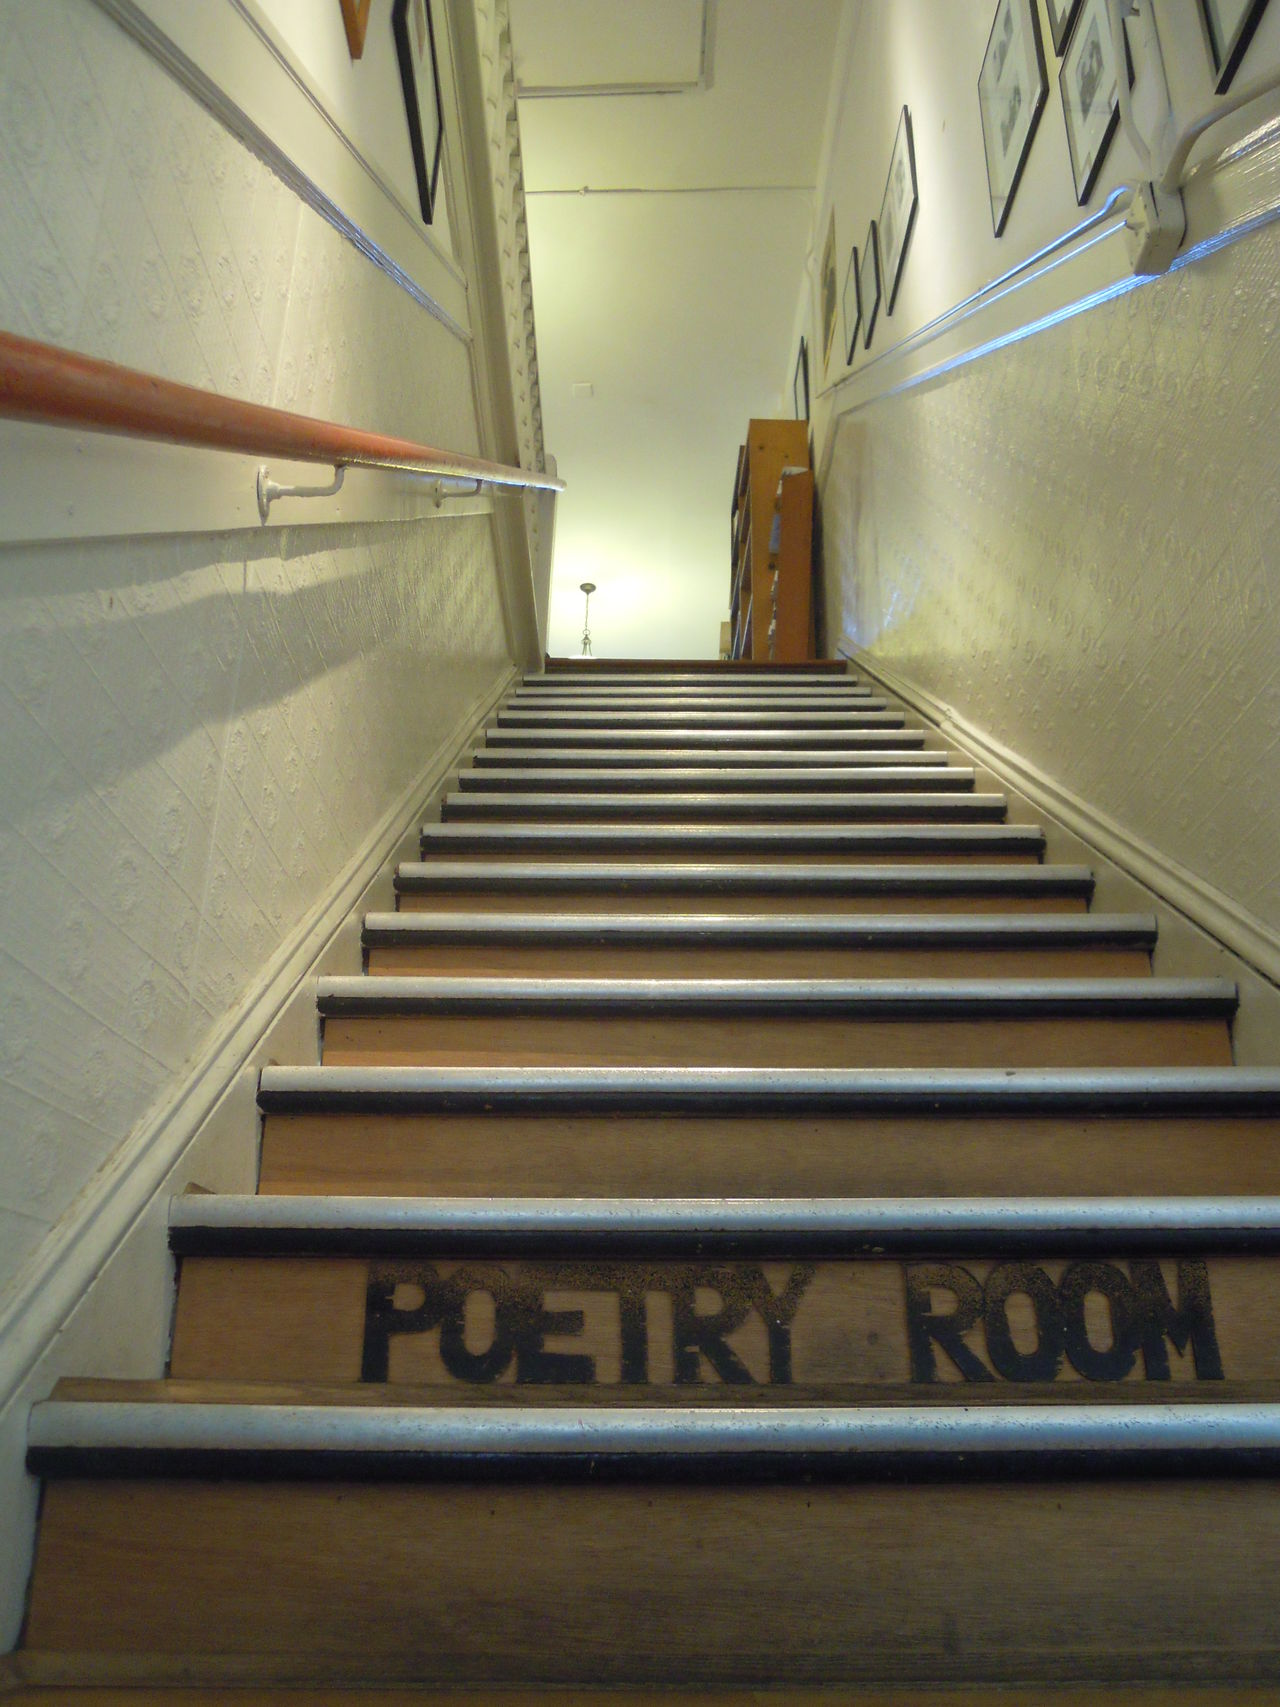 Poetic steps. Book Store Books Framed Pictures Indoors  Perspective Poetry Staircase Steps Steps Steps And Staircases Tiled Floor View From Below Wood Words